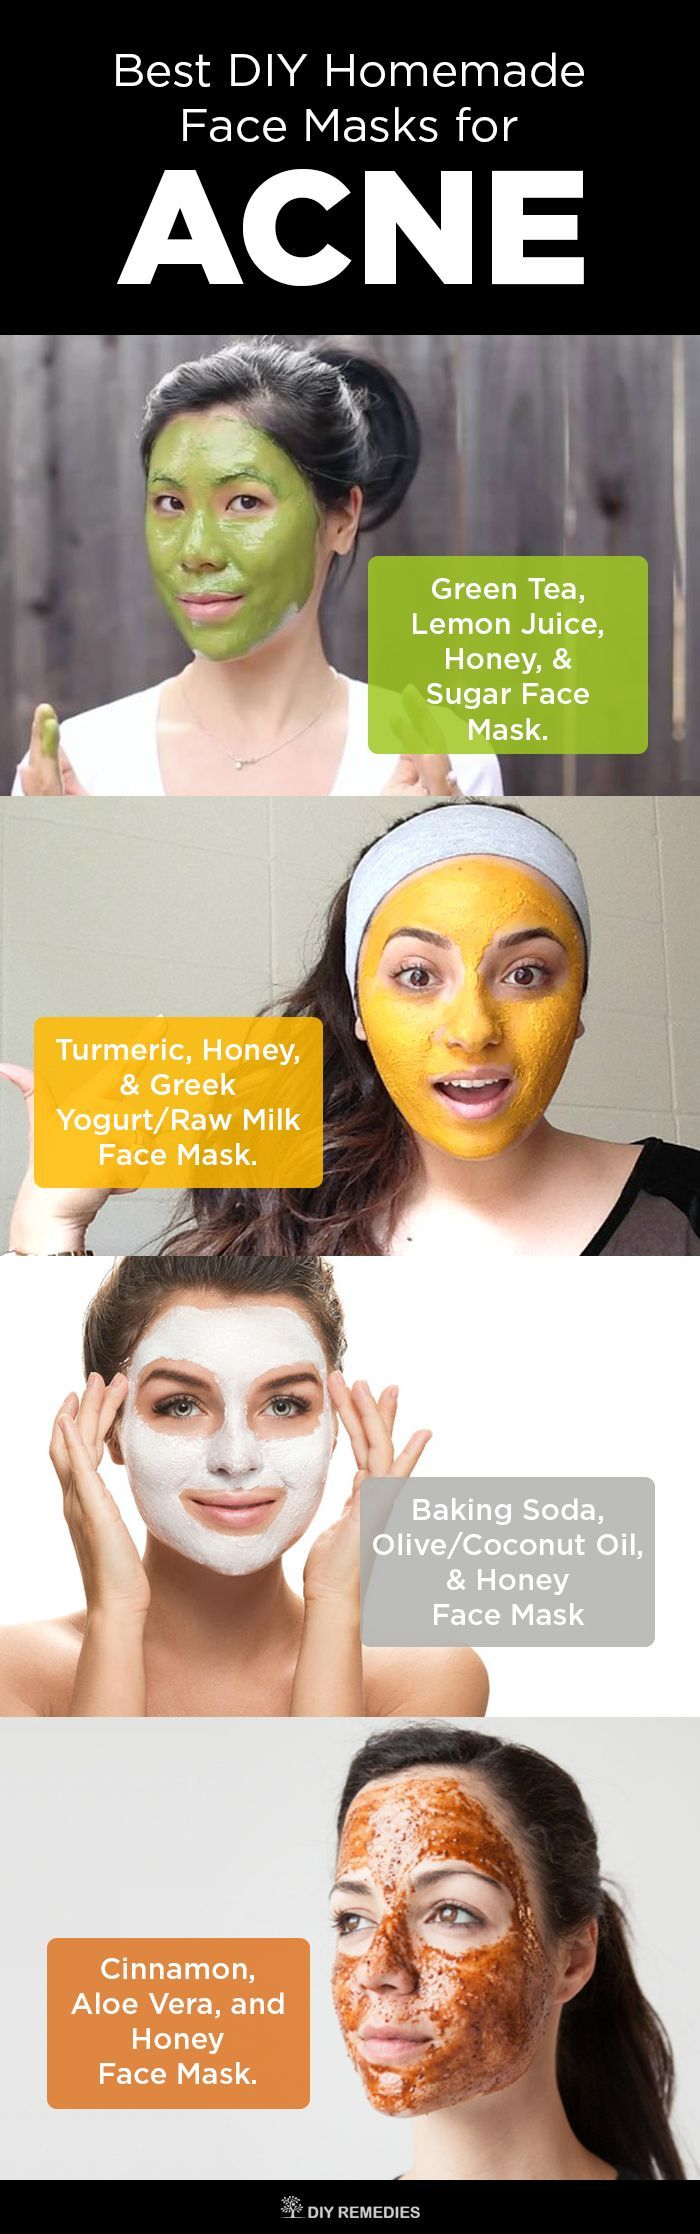 6 Best DIY Homemade Face Masks for Acne